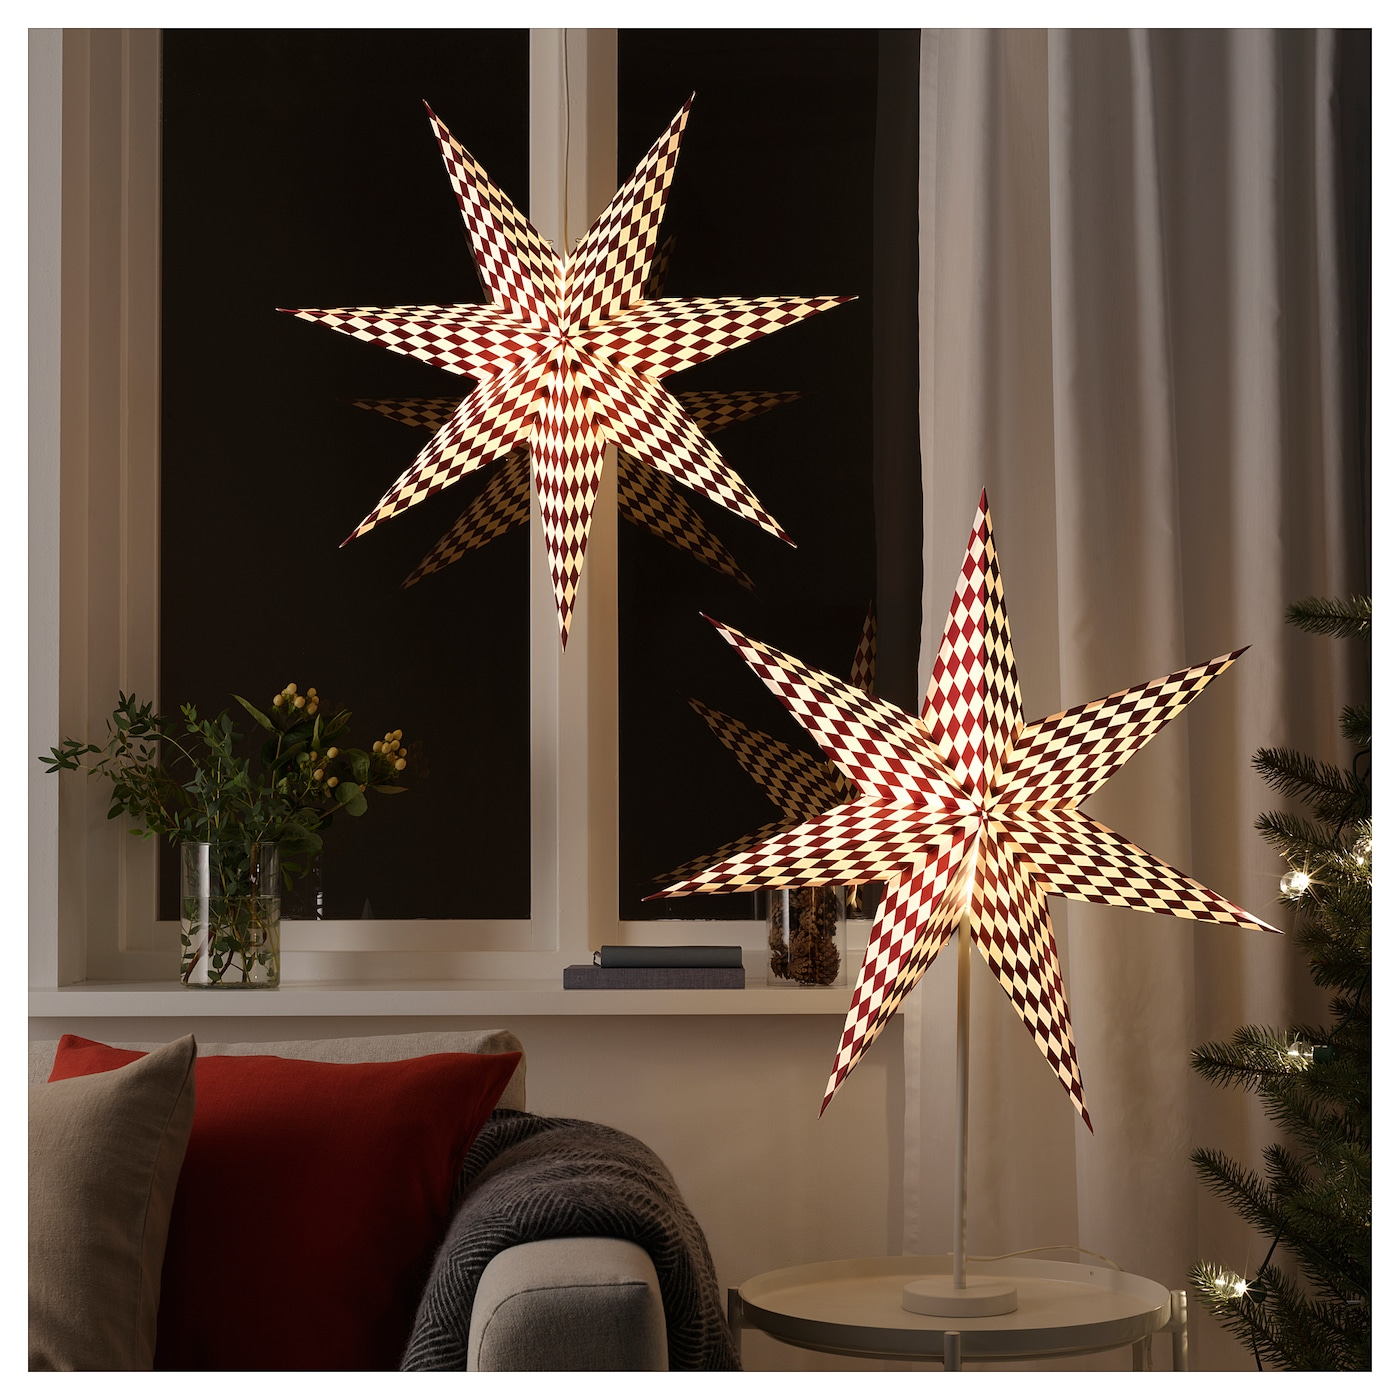 IKEA STRÅLA lamp shade Gives a warm, cosy glow and spreads the holiday atmosphere in your home.